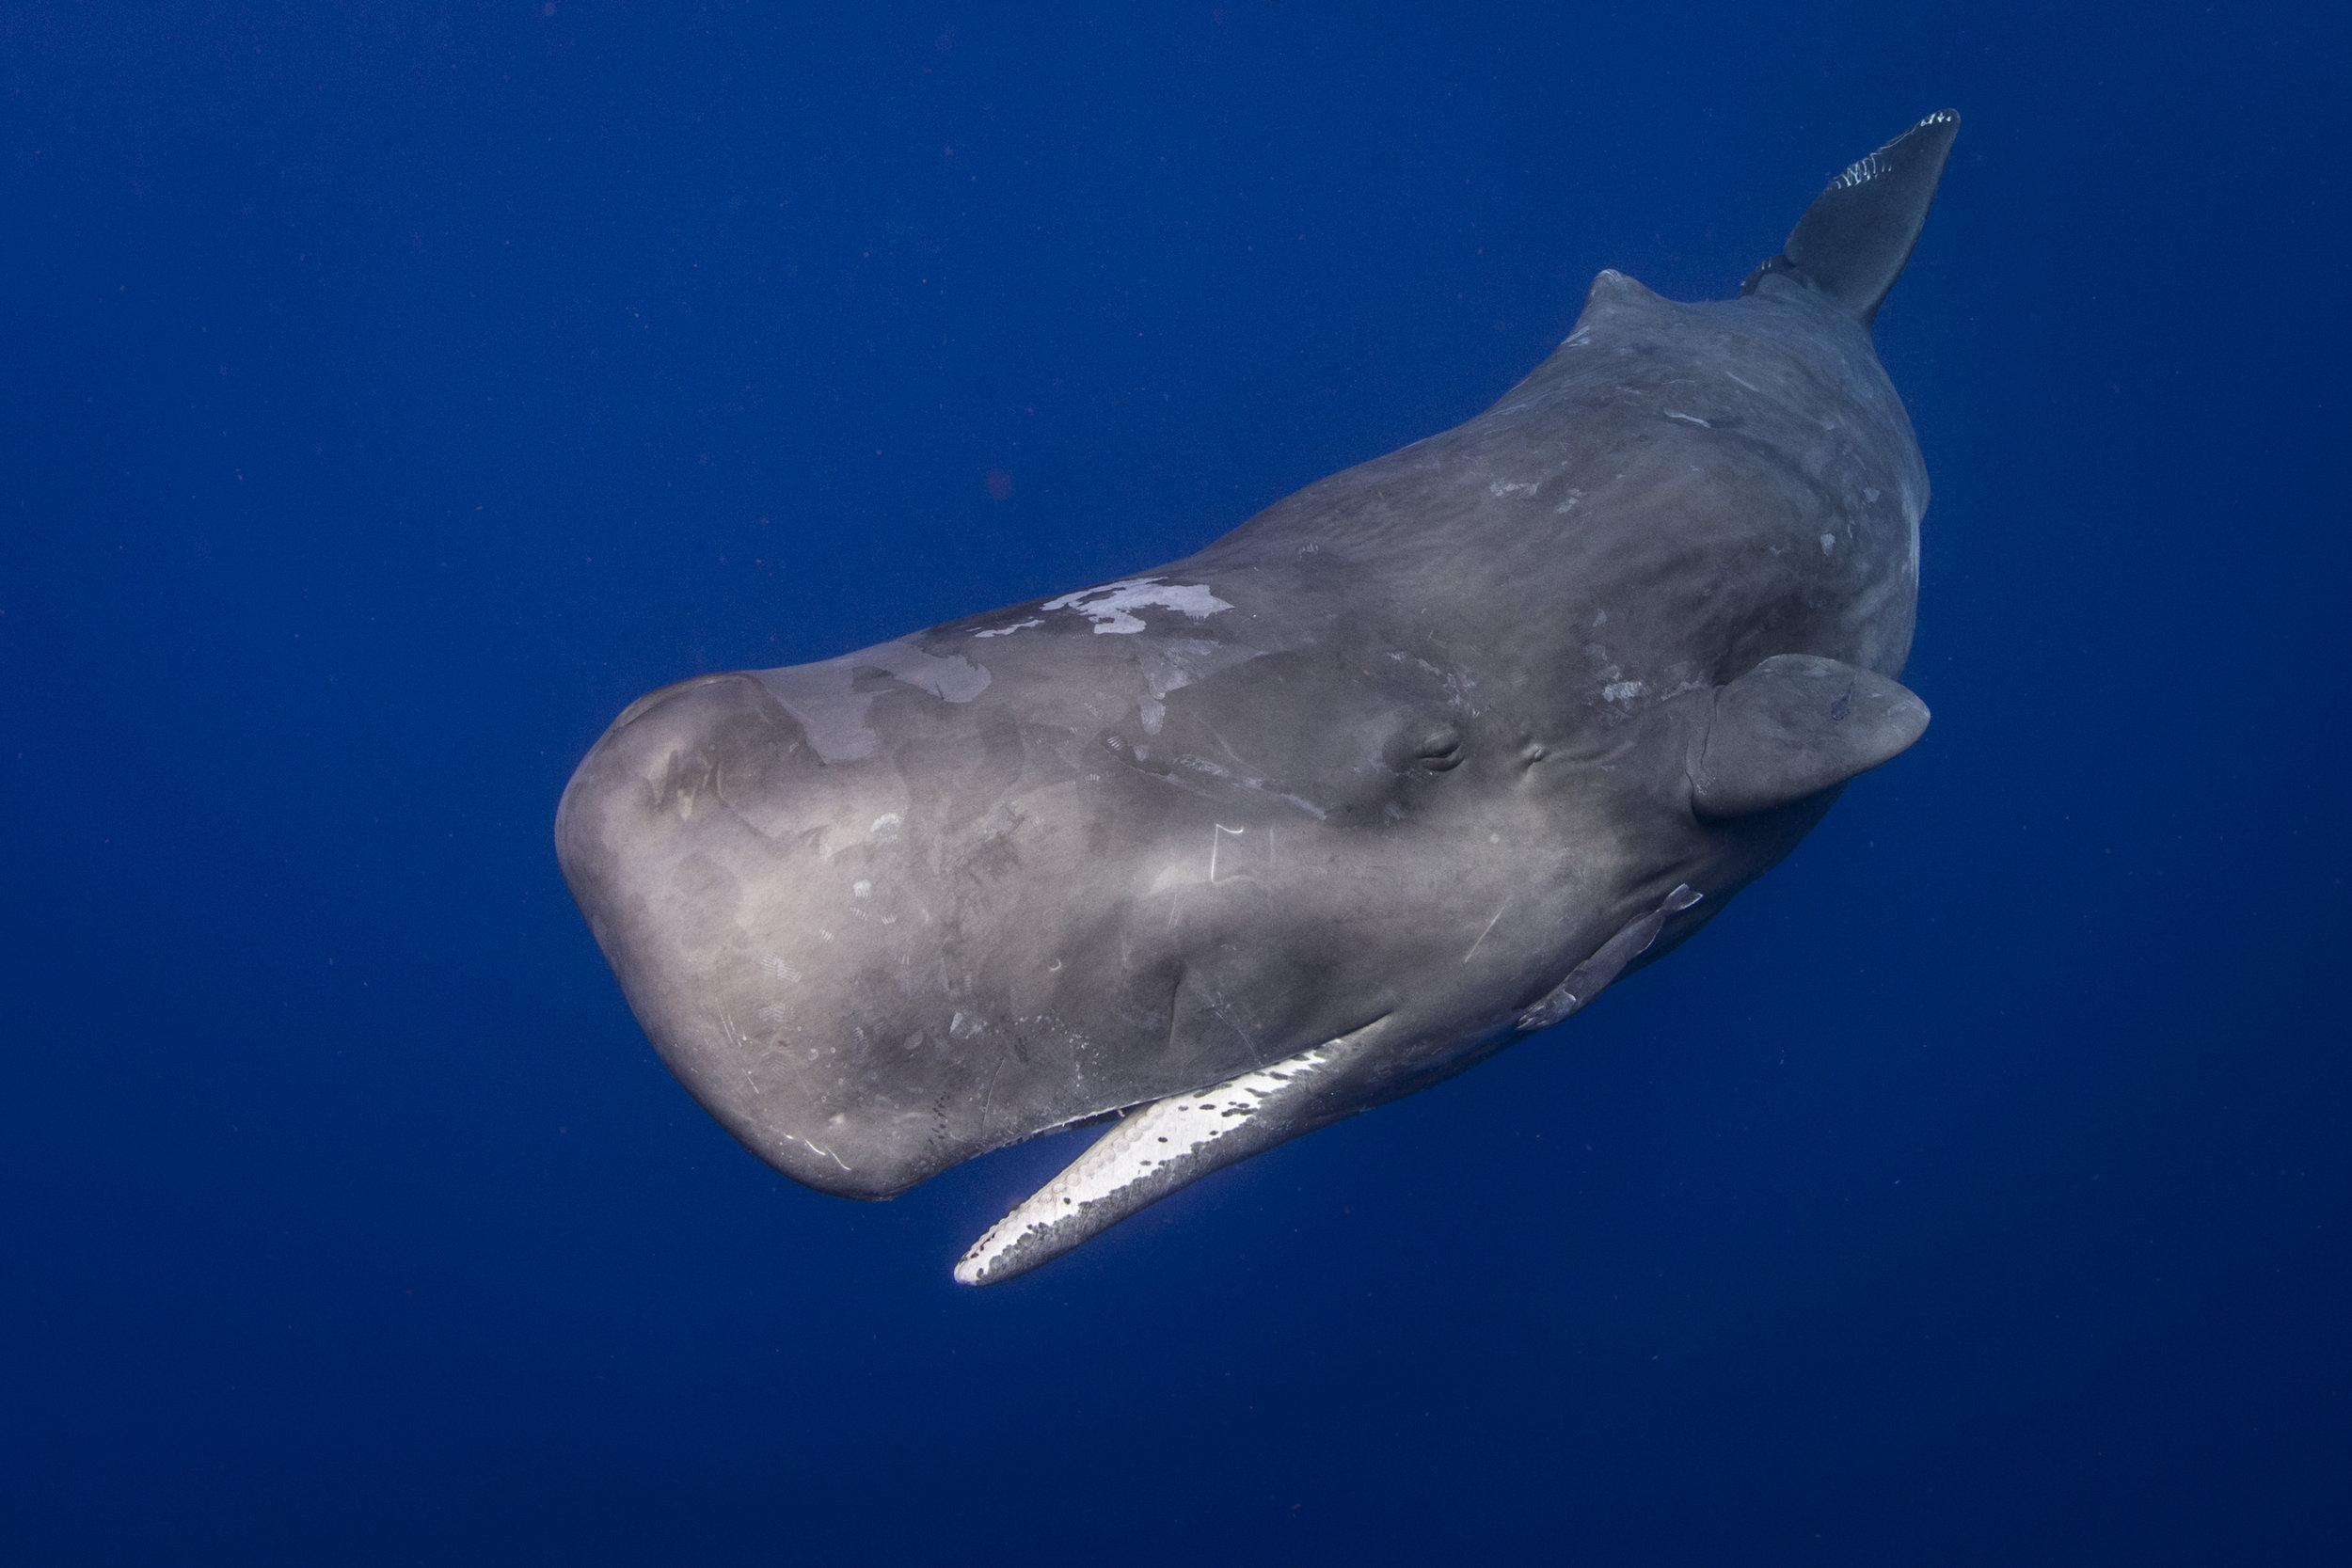 sperm whale credit: ellen cuylaerts / coral reef image bank